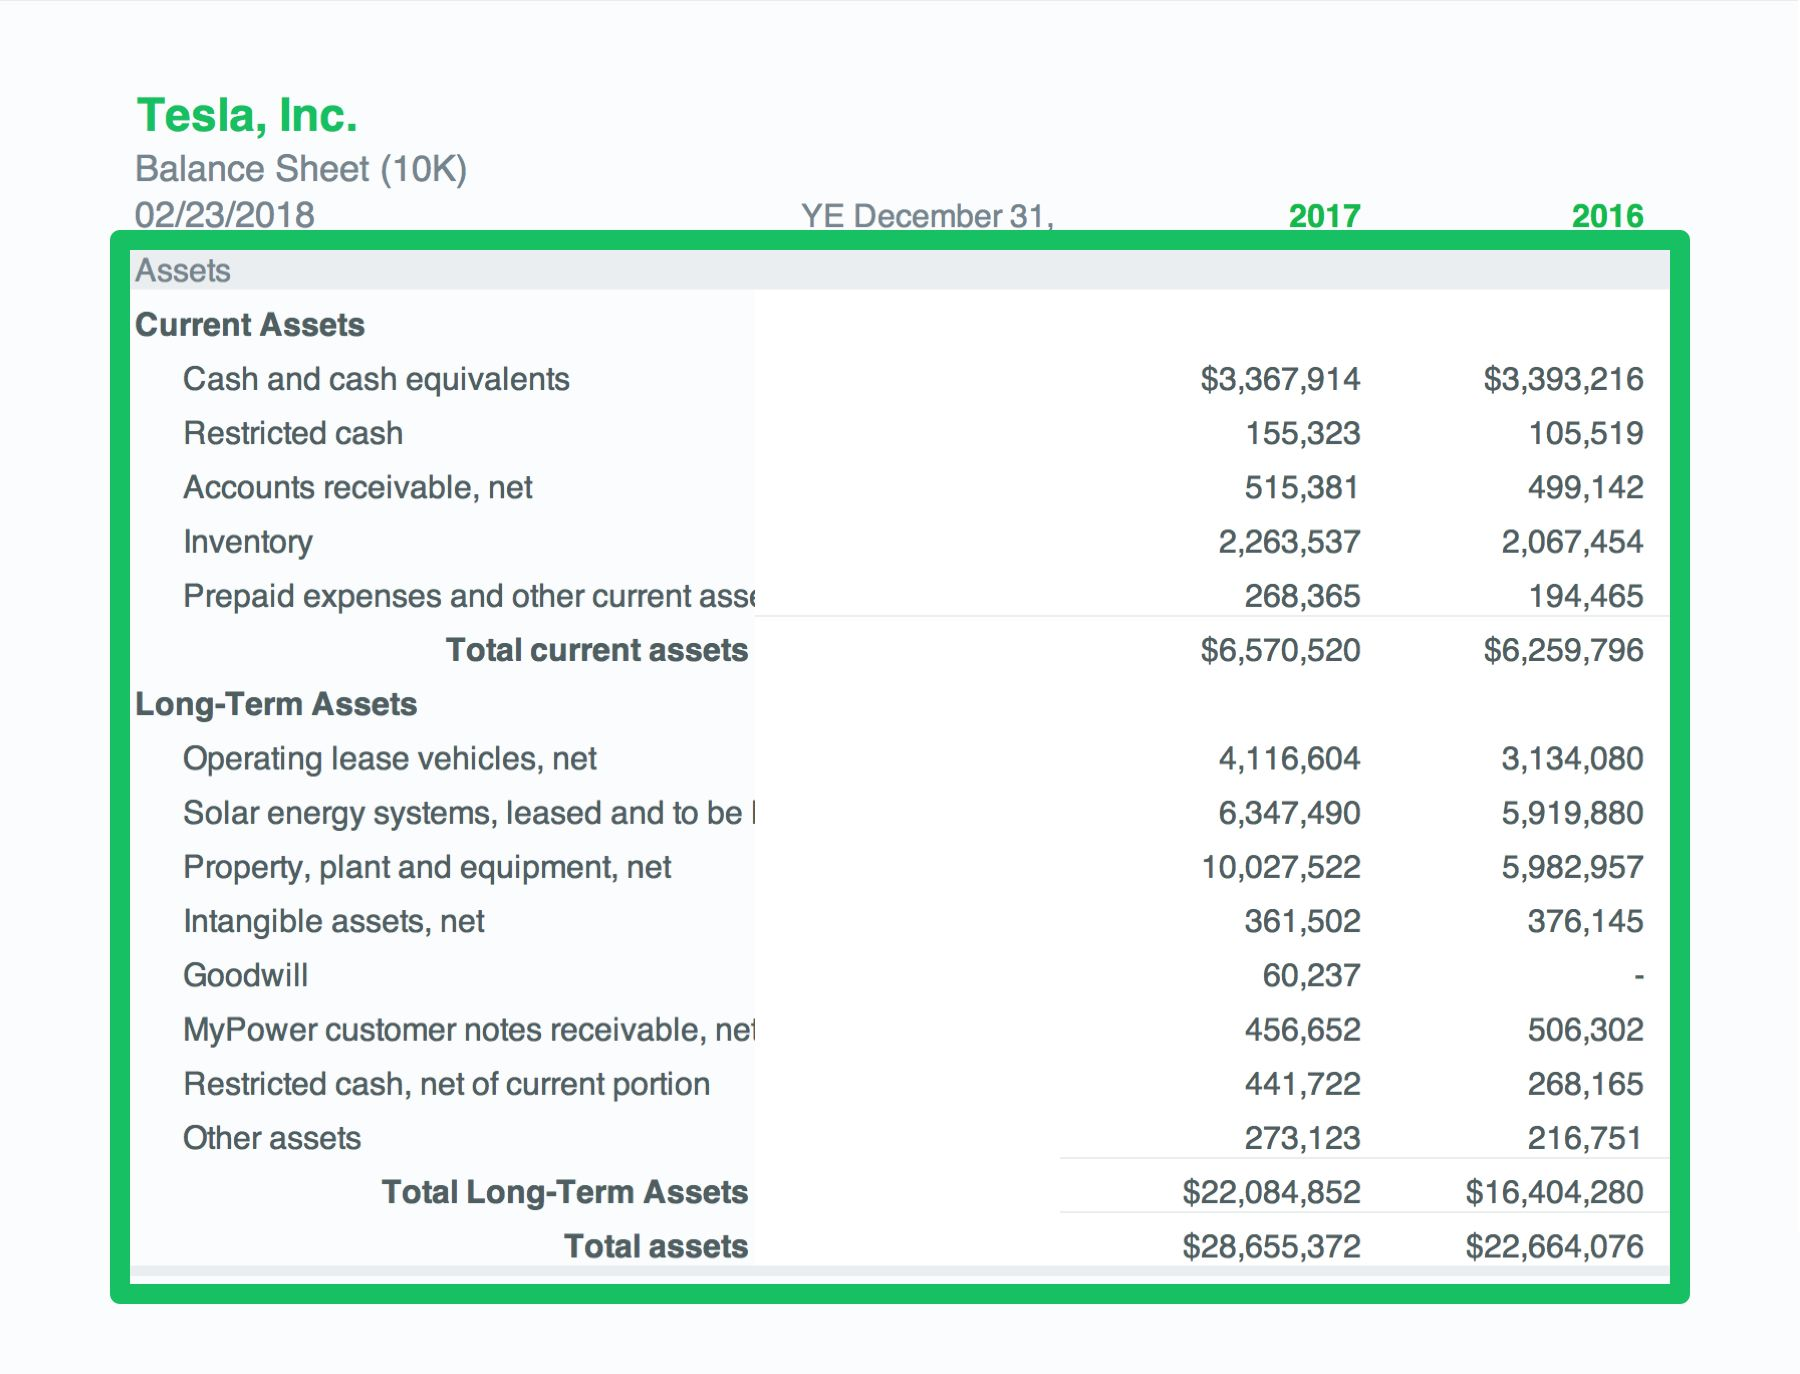 Total assets section of the Balance Sheet